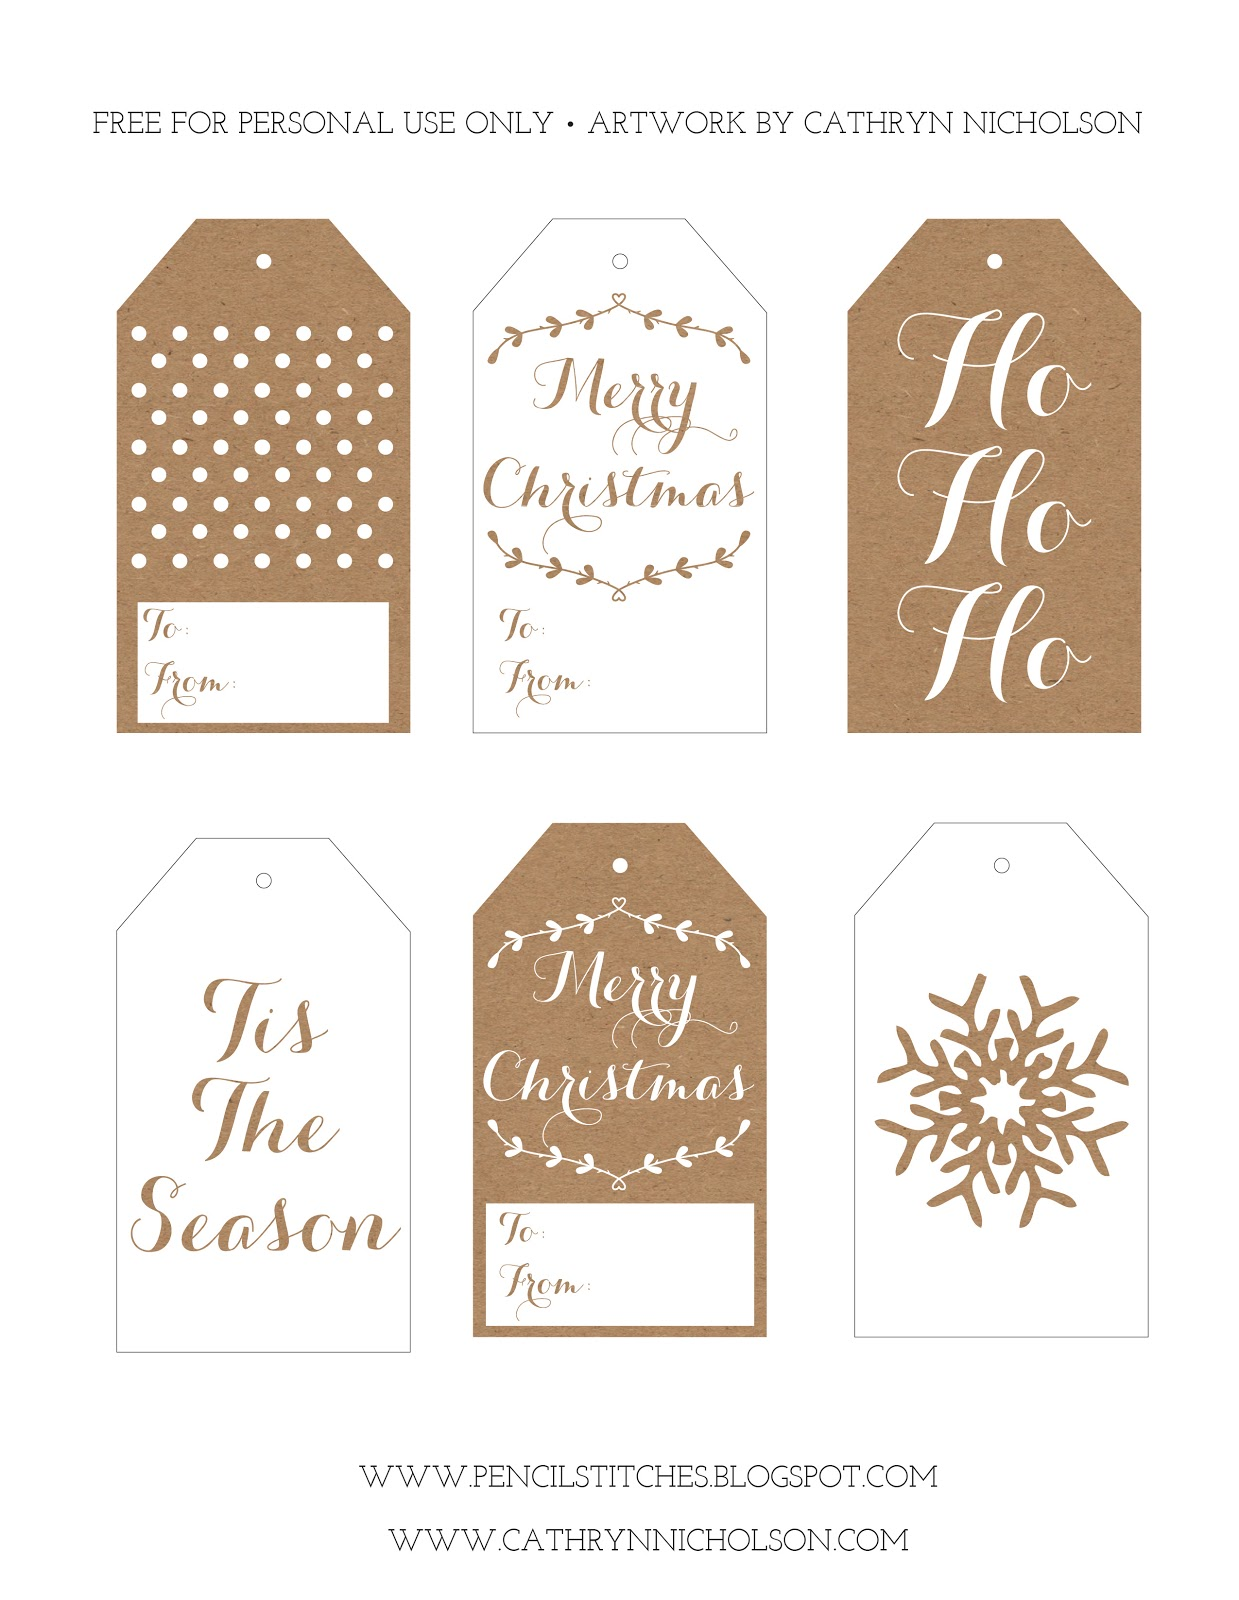 Pencil Stitches: FREE Printable Christmas Gift Tags